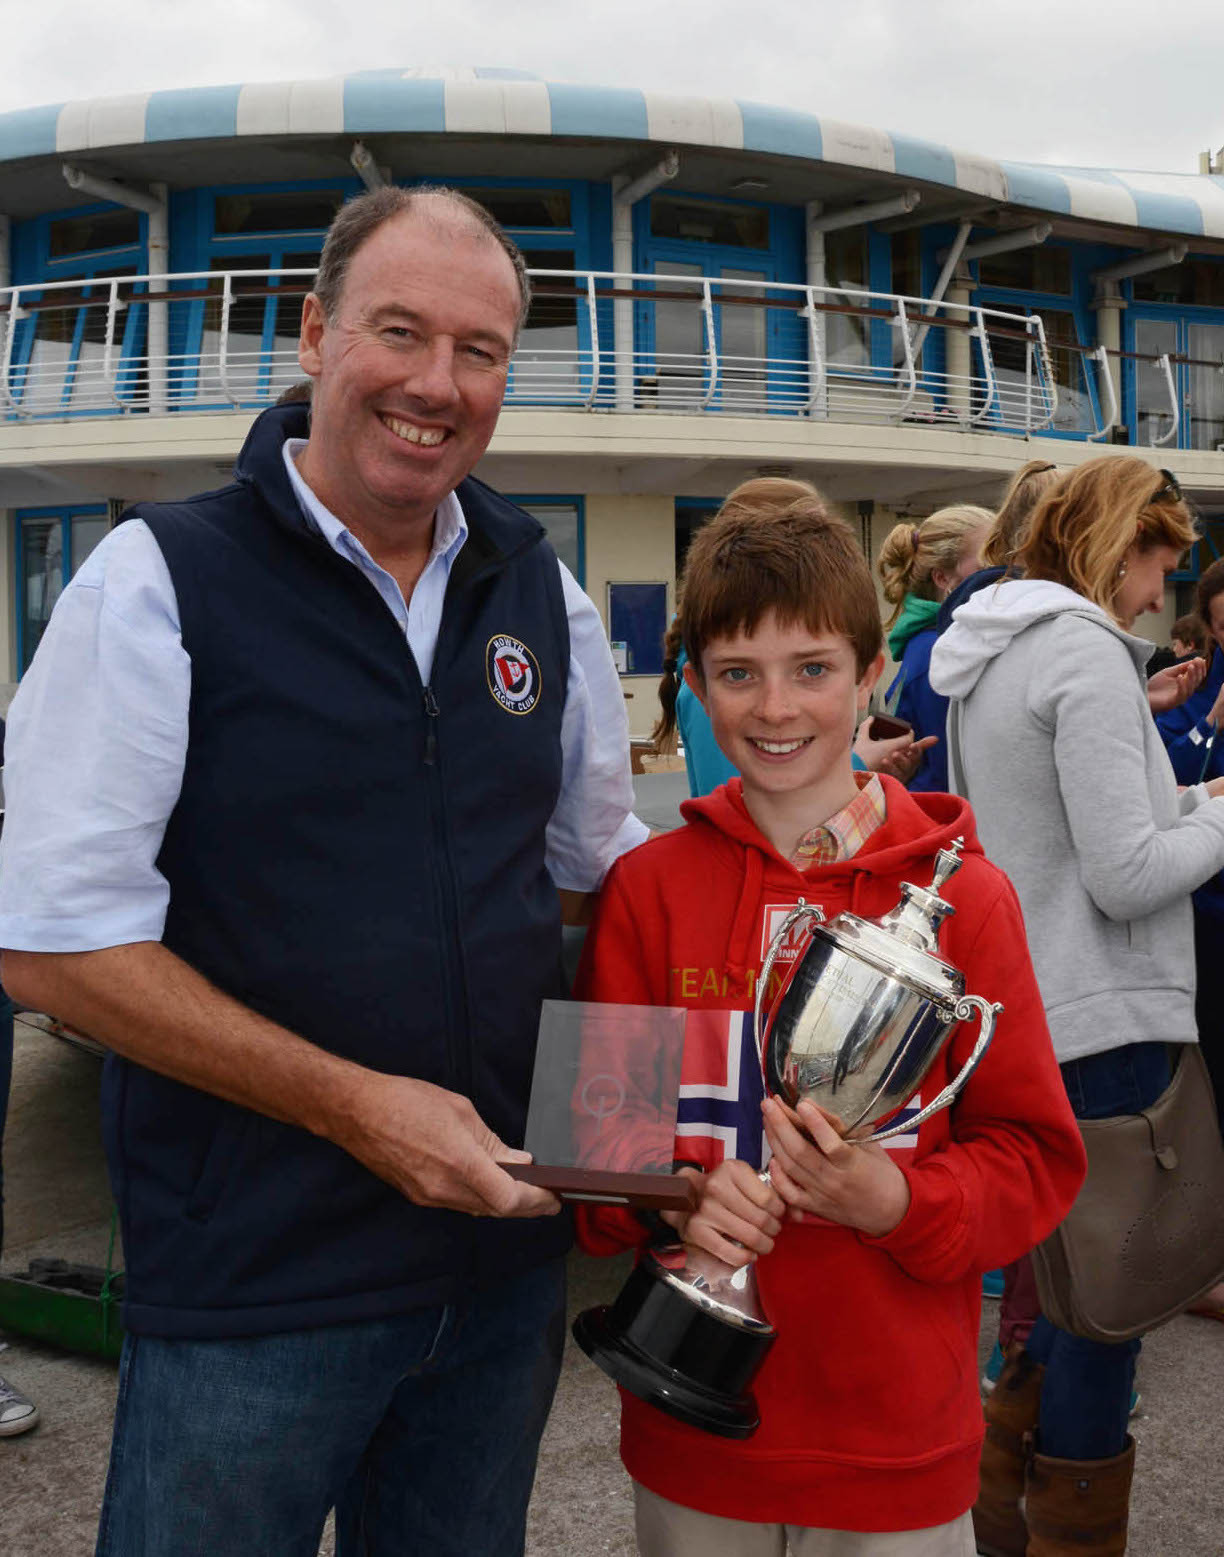 RCYC's Cathal O'Regan with the Senior Gold Fleet Trophy